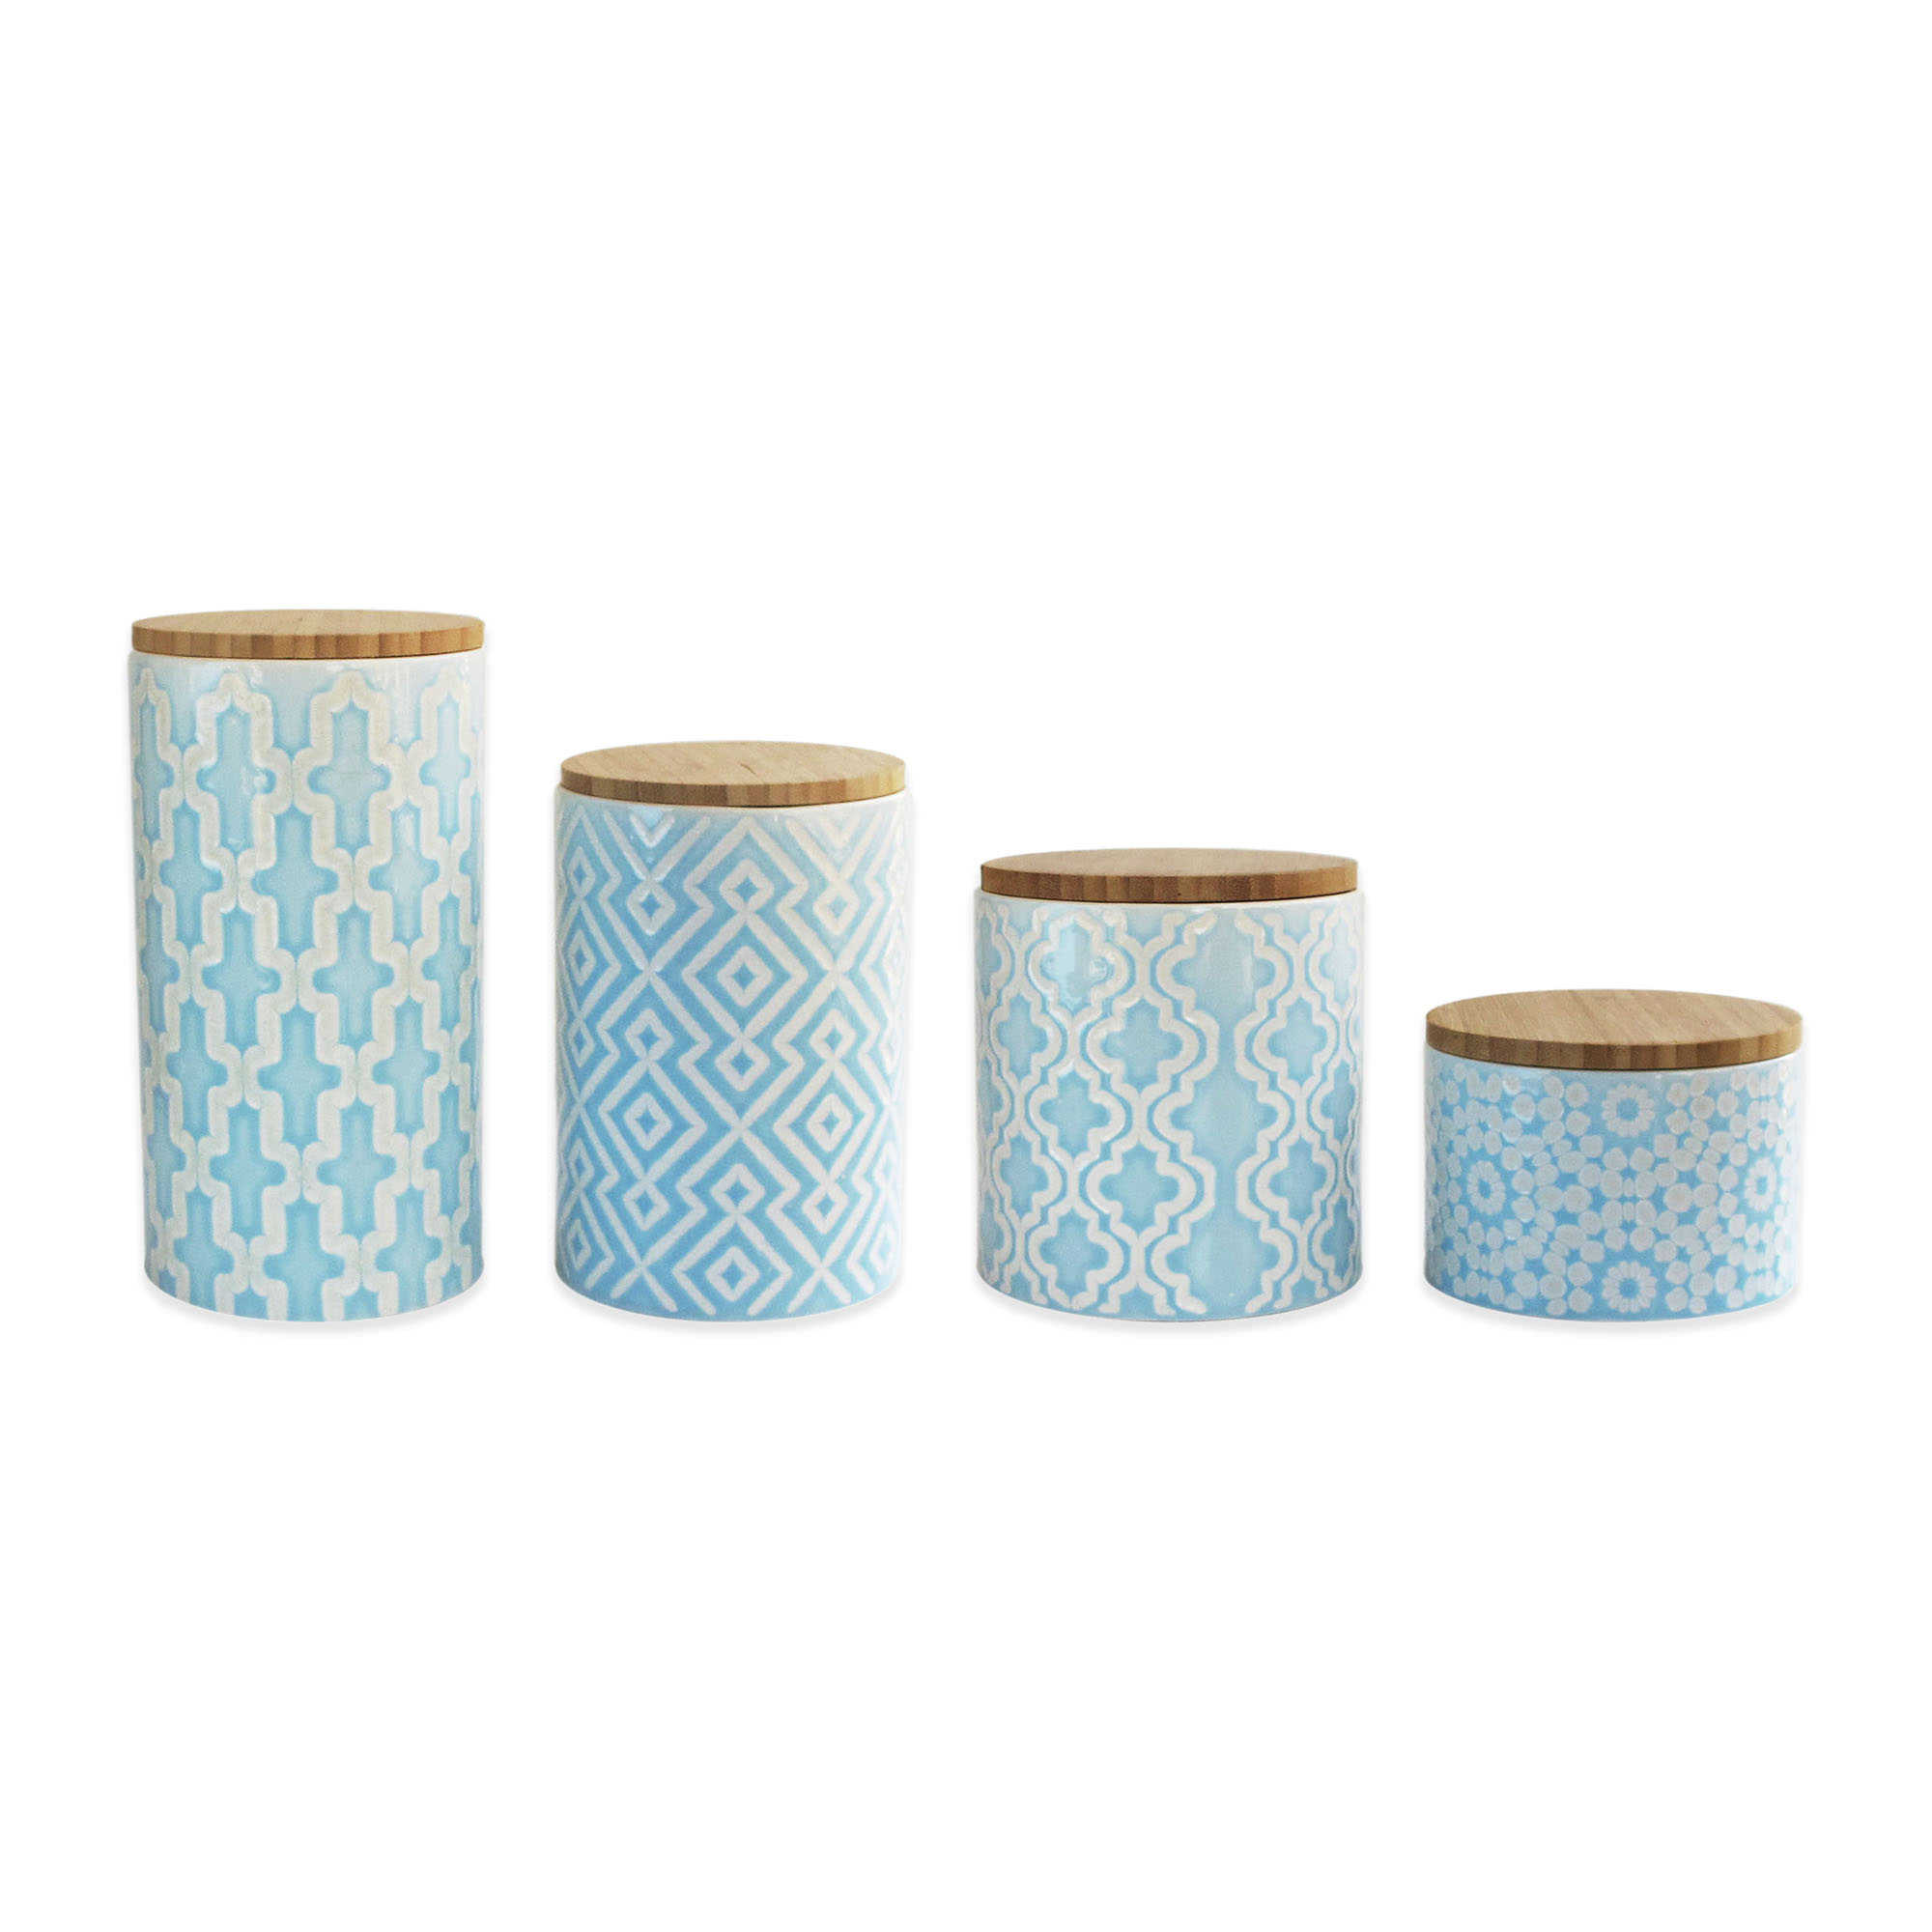 4 piece arabesque canister set in blue everything turquoise kitchen appealing retro kitchen canisters countertop